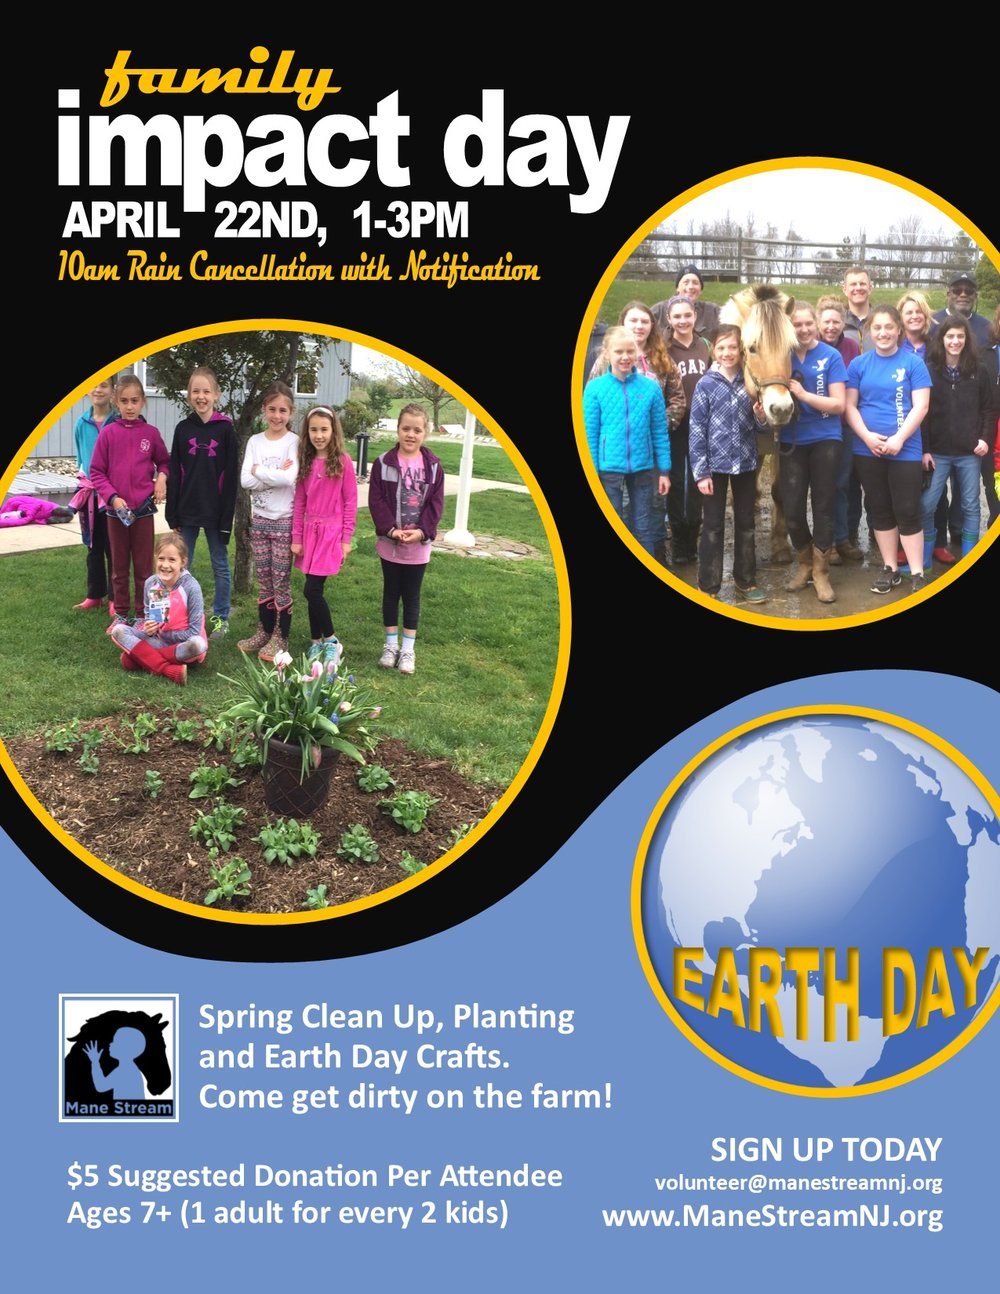 2018 Family Earthday Impact Day Flyer.jpg